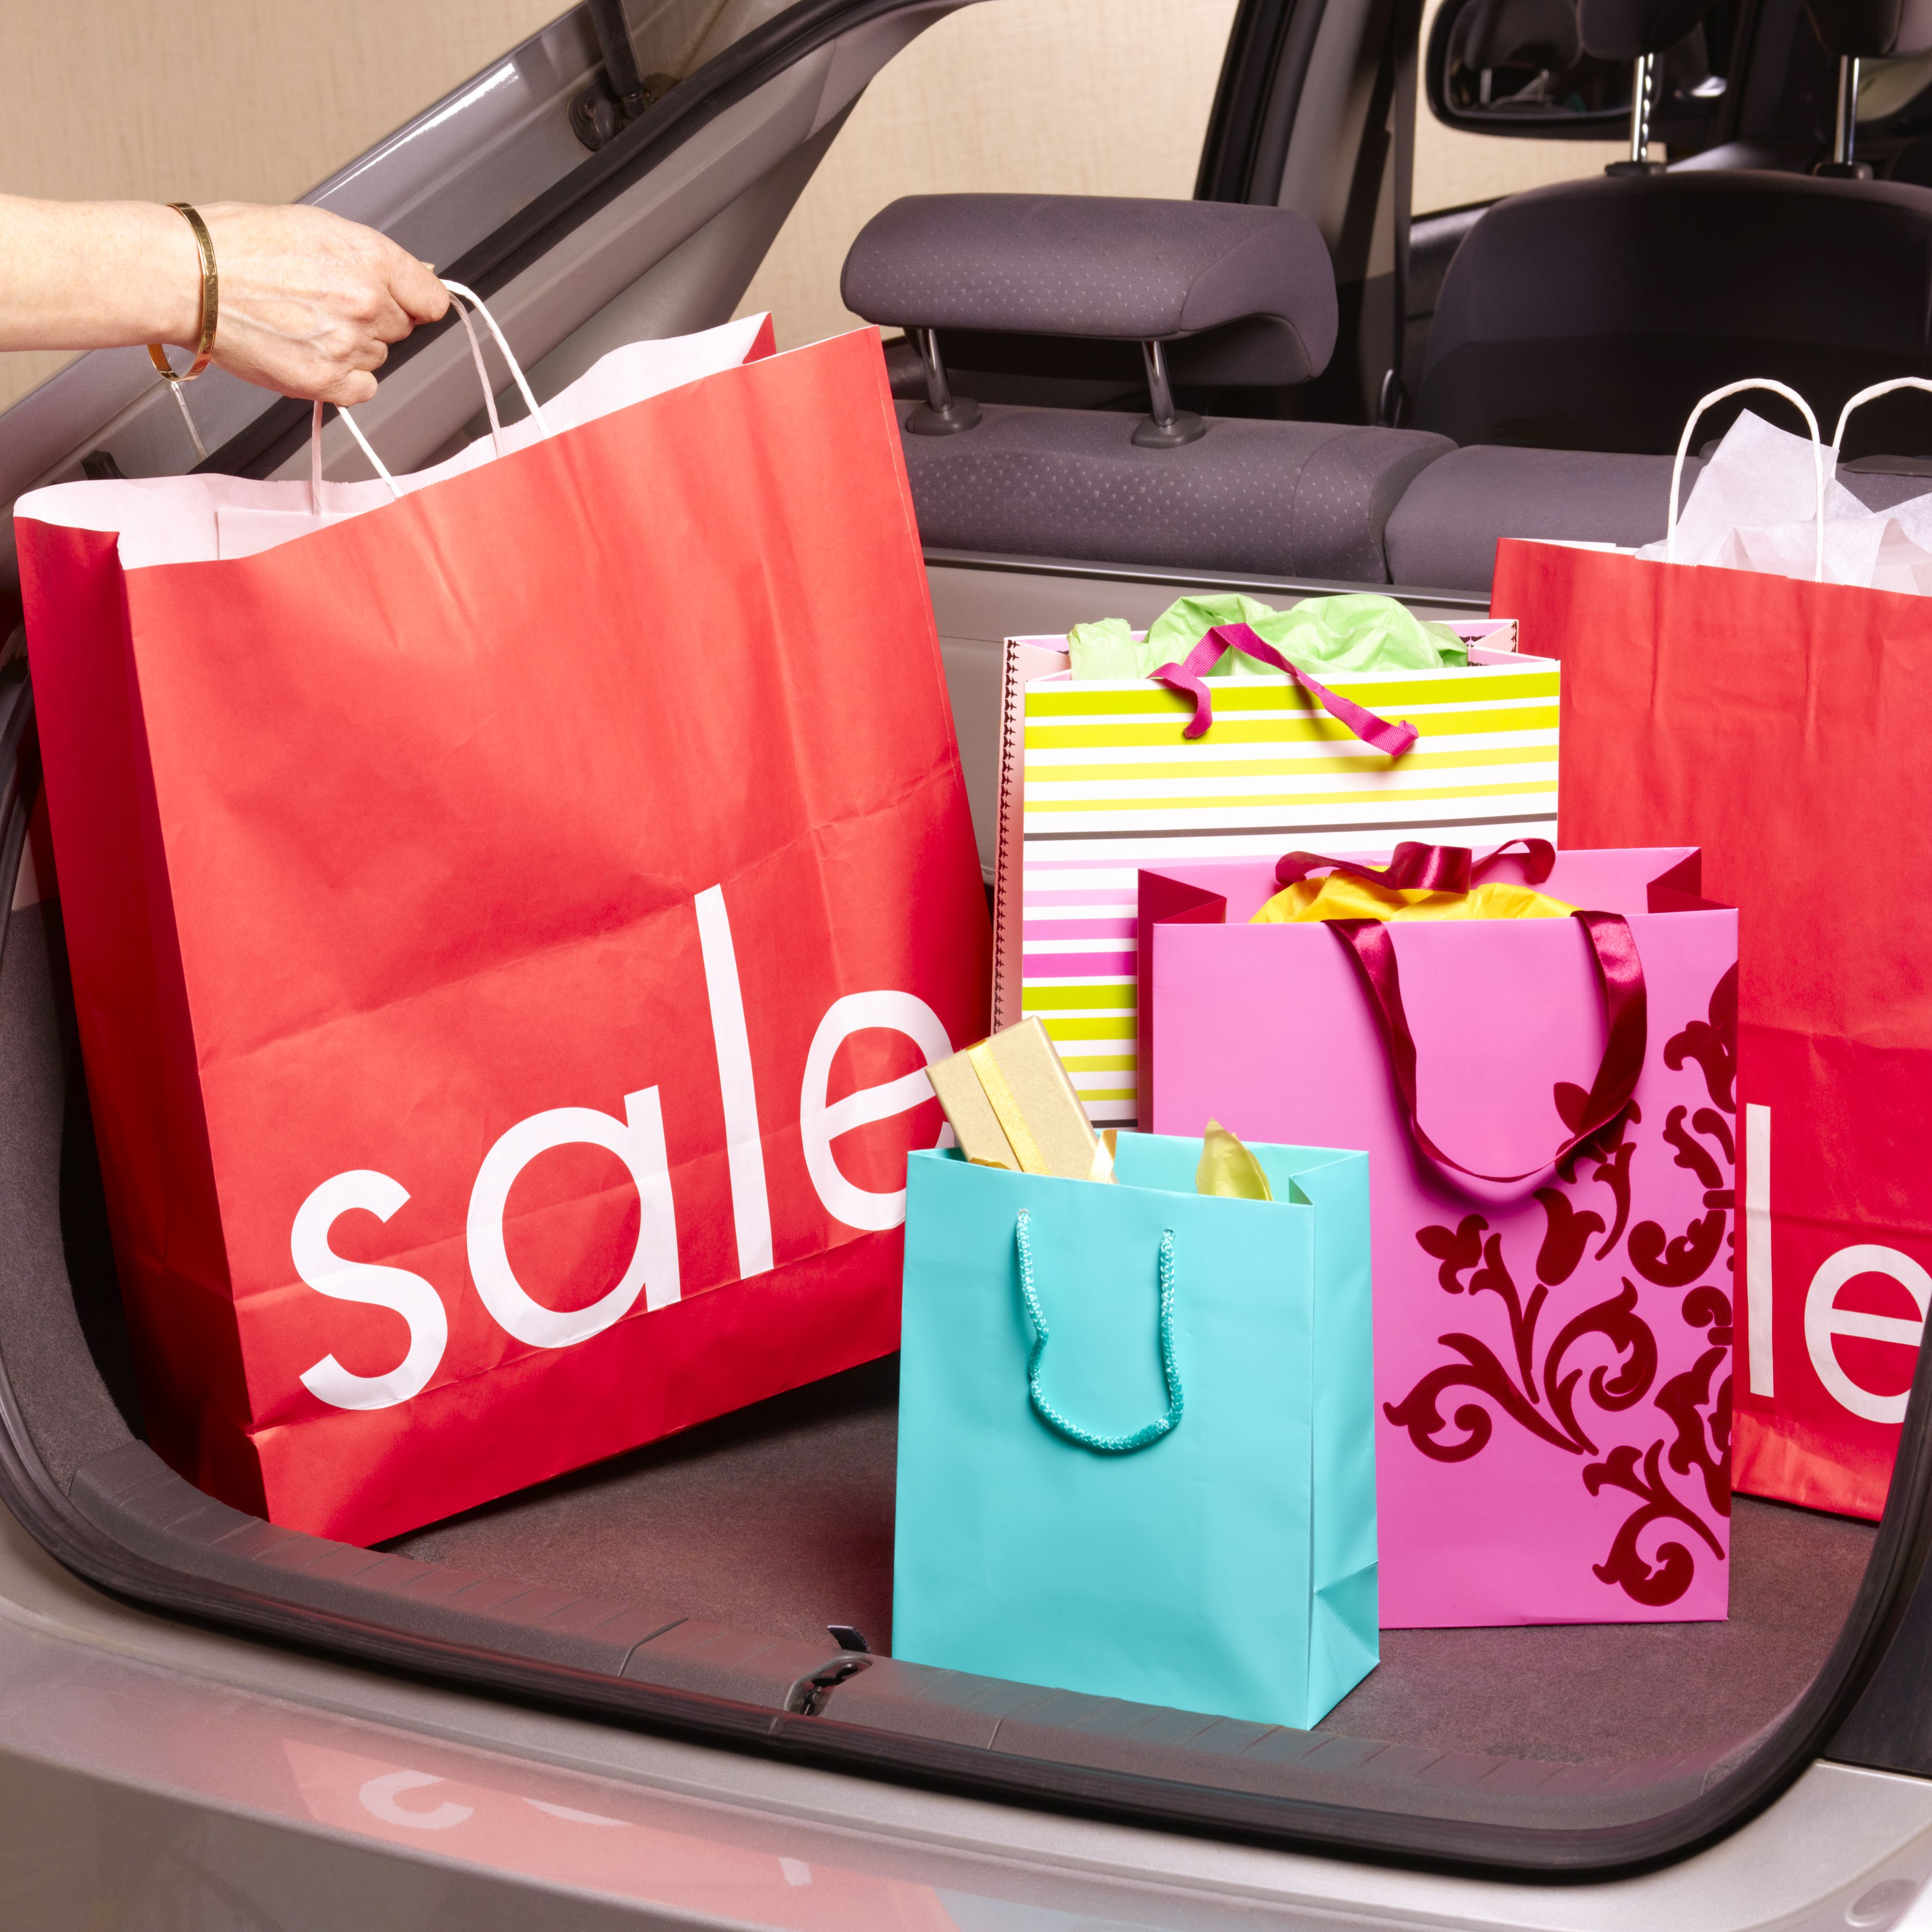 e5a1ef0eed1 Where to Find UK Outlets for Discount Designer Shopping